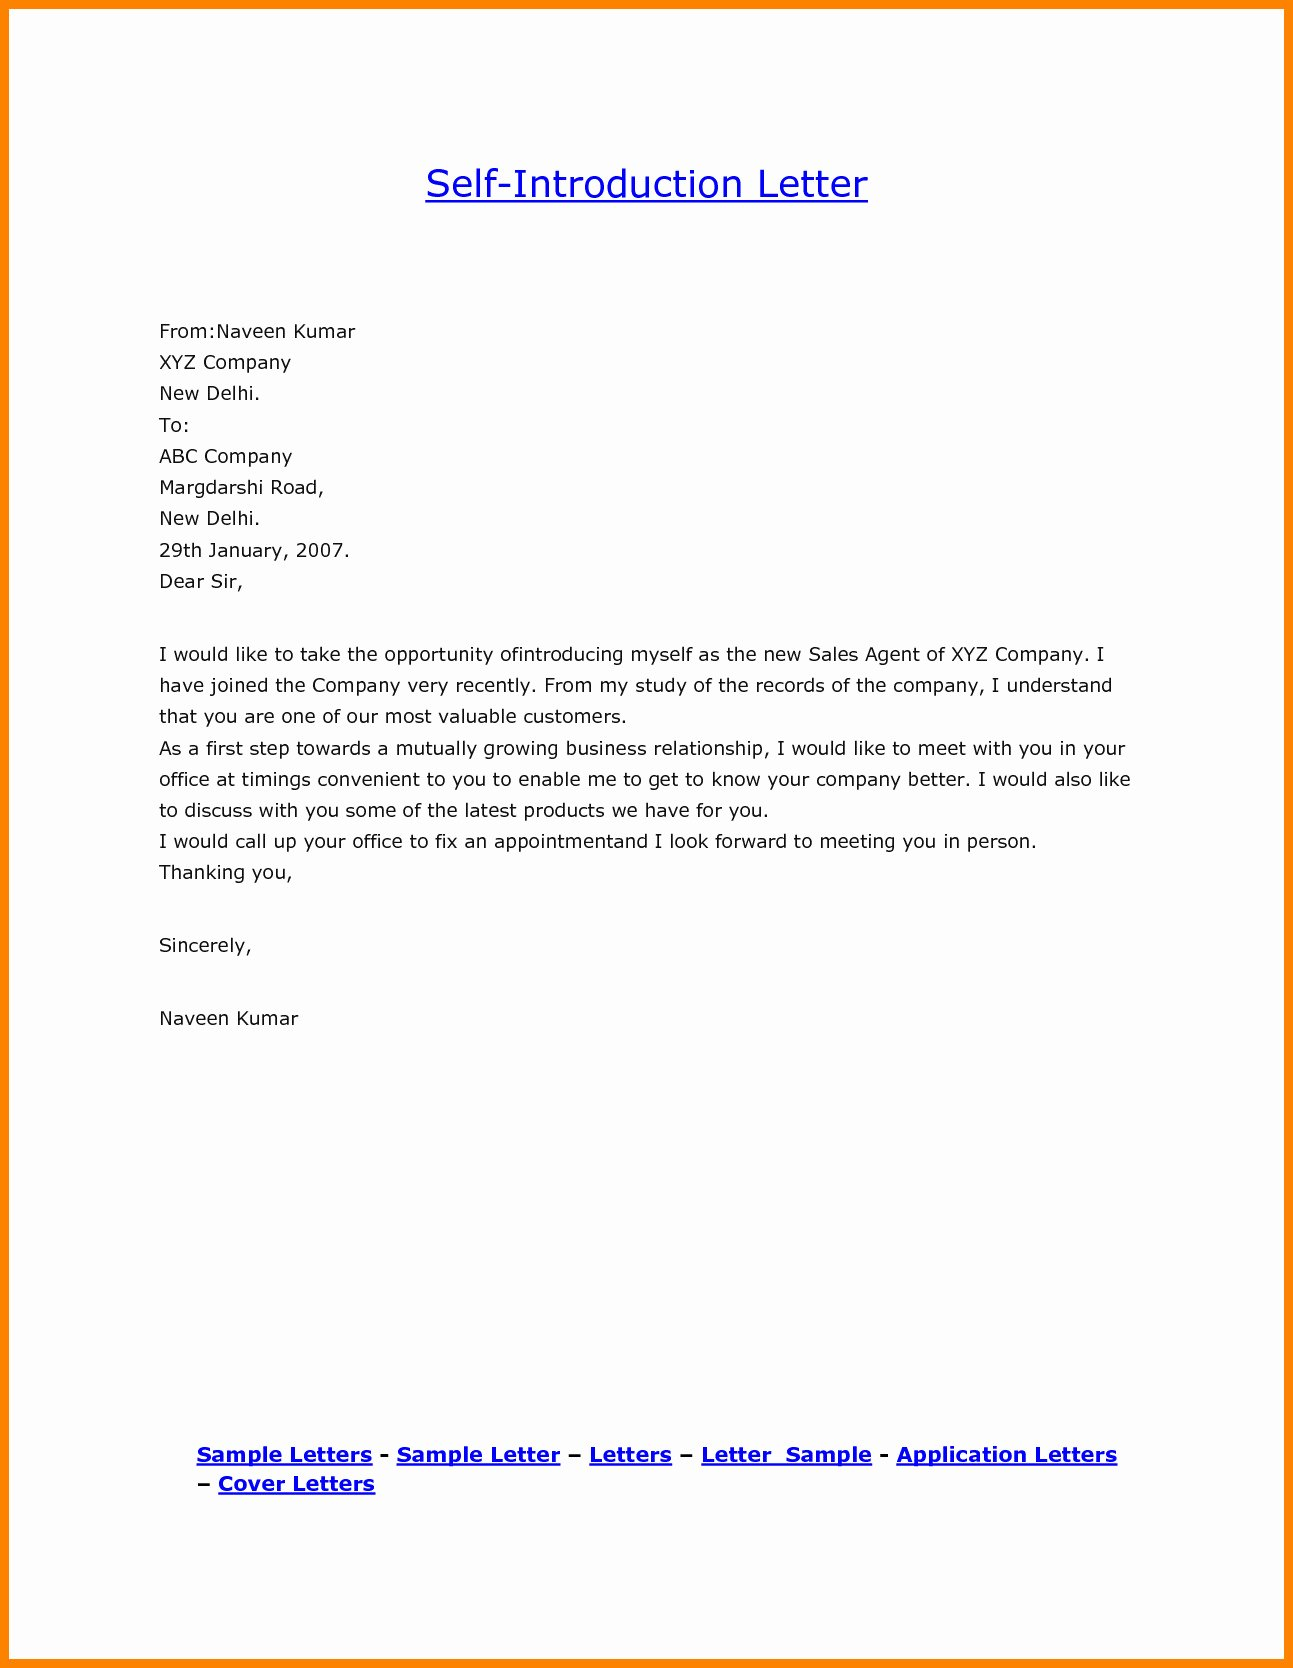 Real Estate Introduction Letter to Friends Template Beautiful Real Estate Introduction Letter Examples to Neighbors